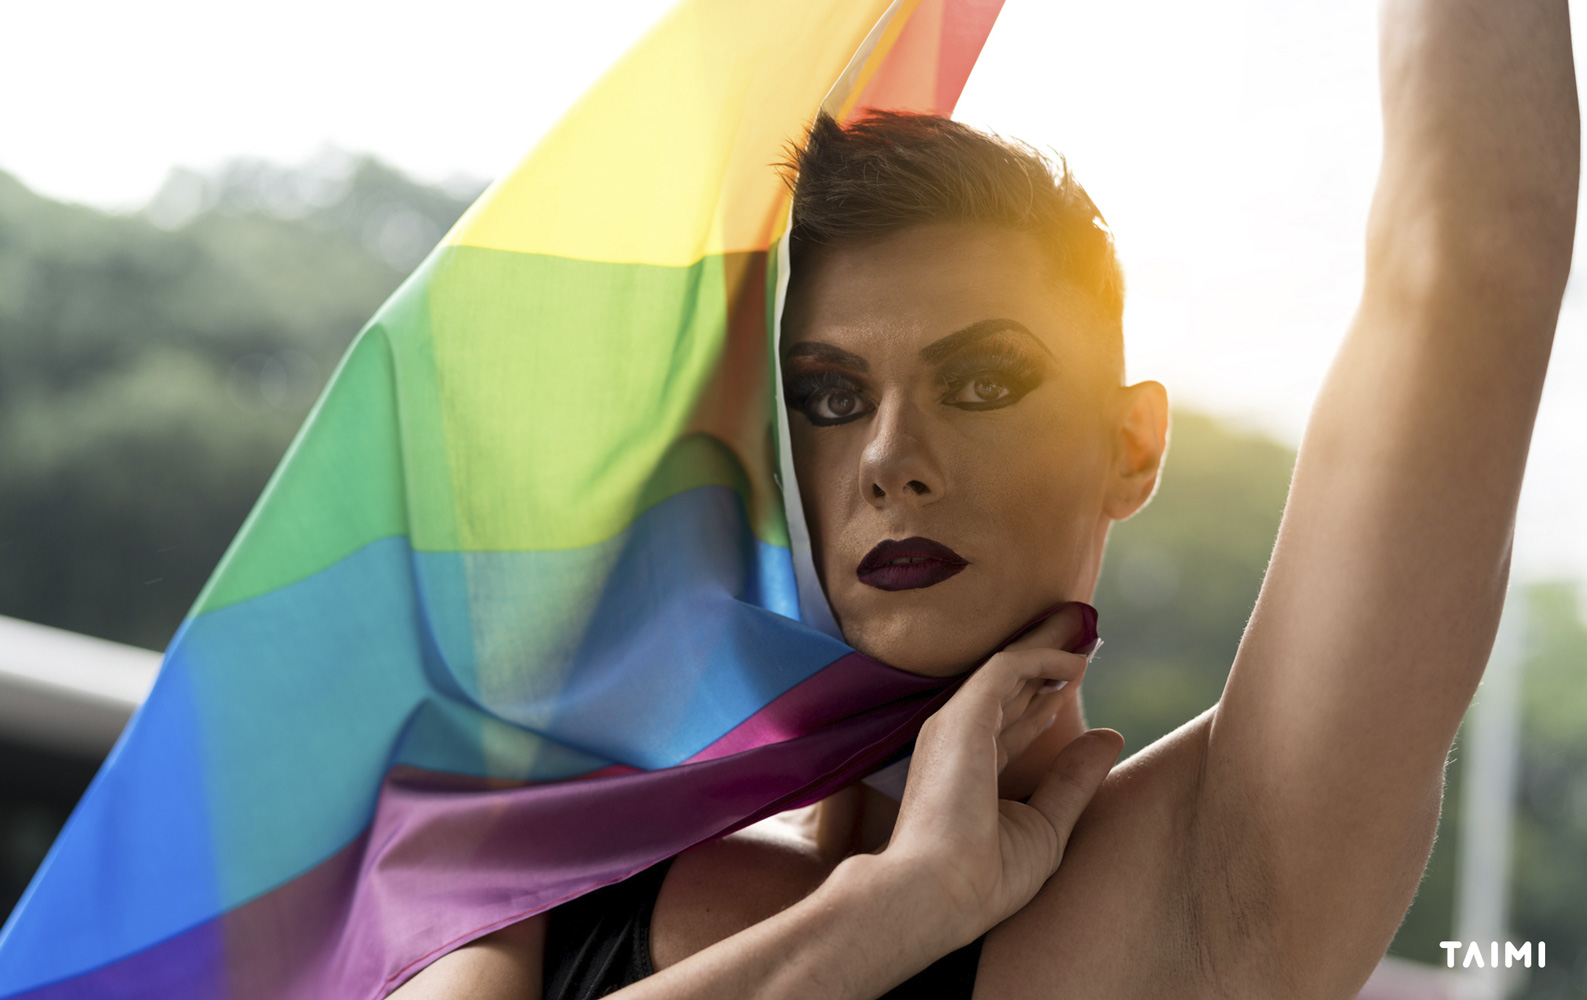 TAIMI focuses on Coming Out - a Journey, Not a Destination